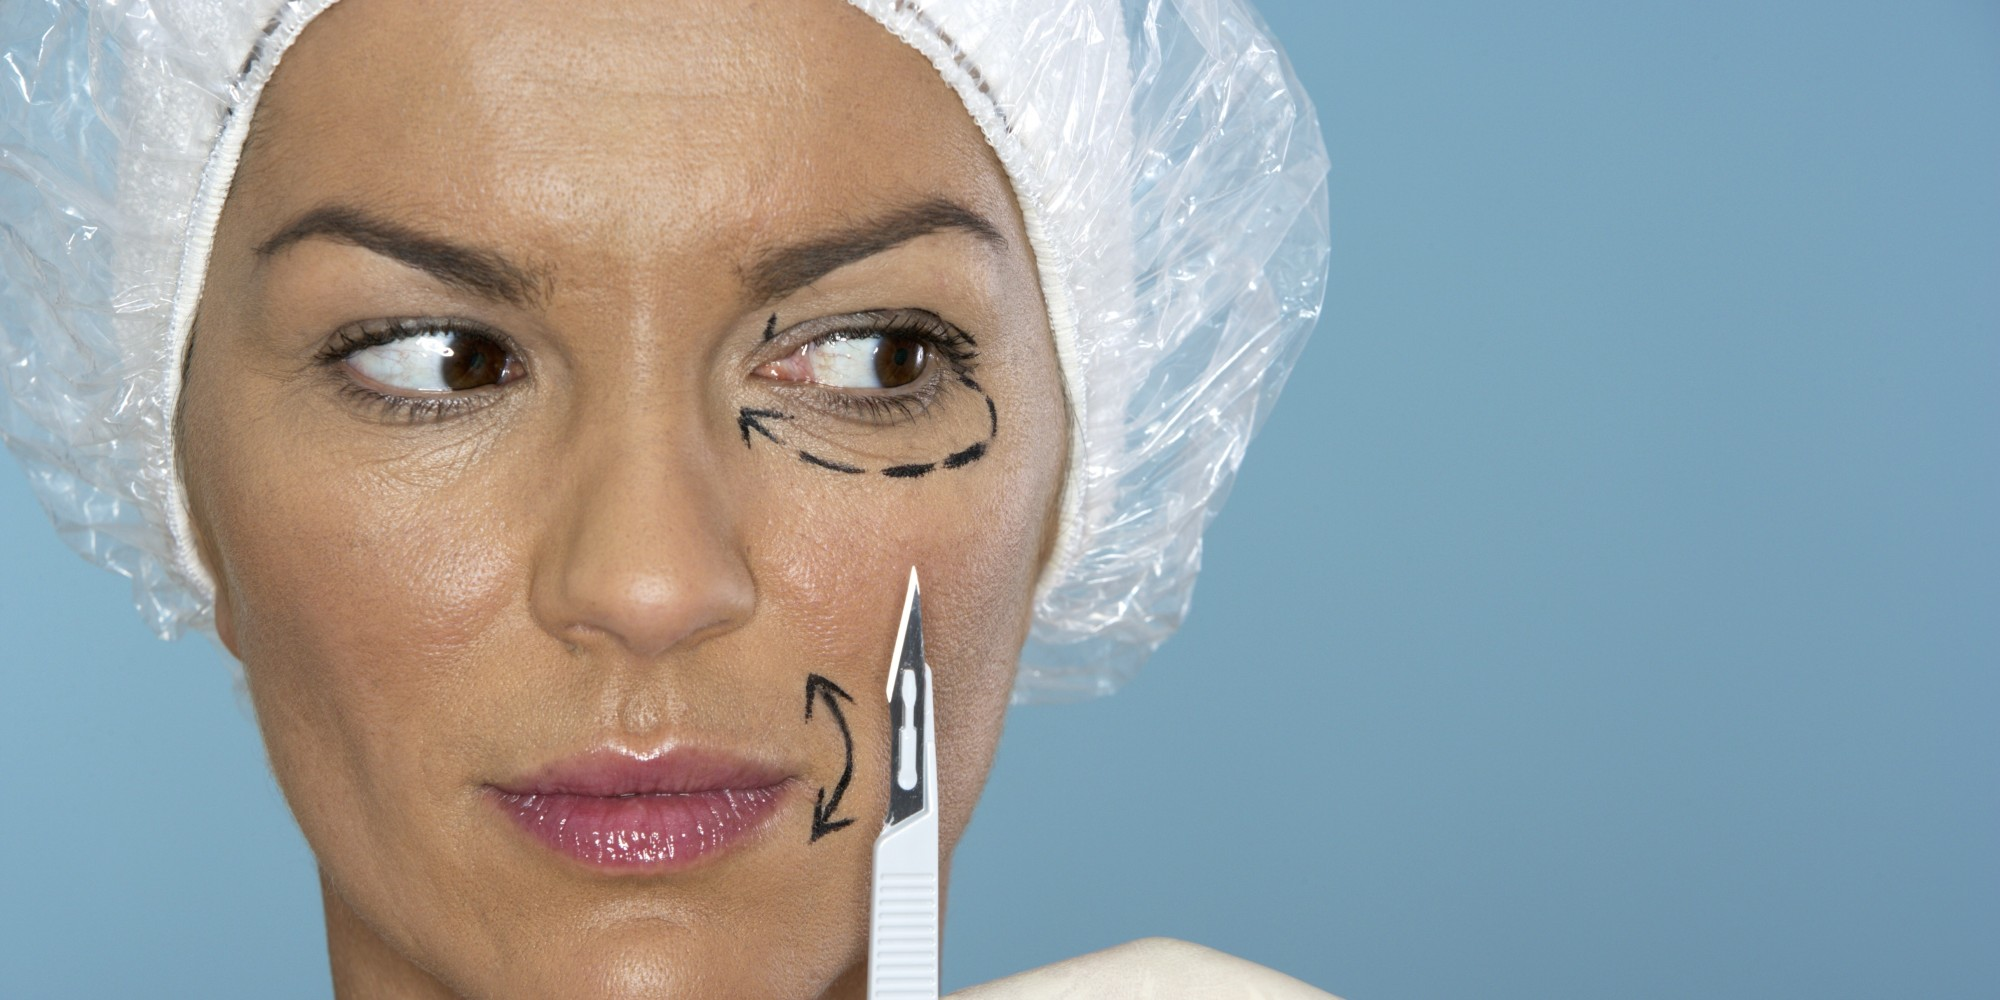 4 good reasons to never get plastic surgery the huffington post